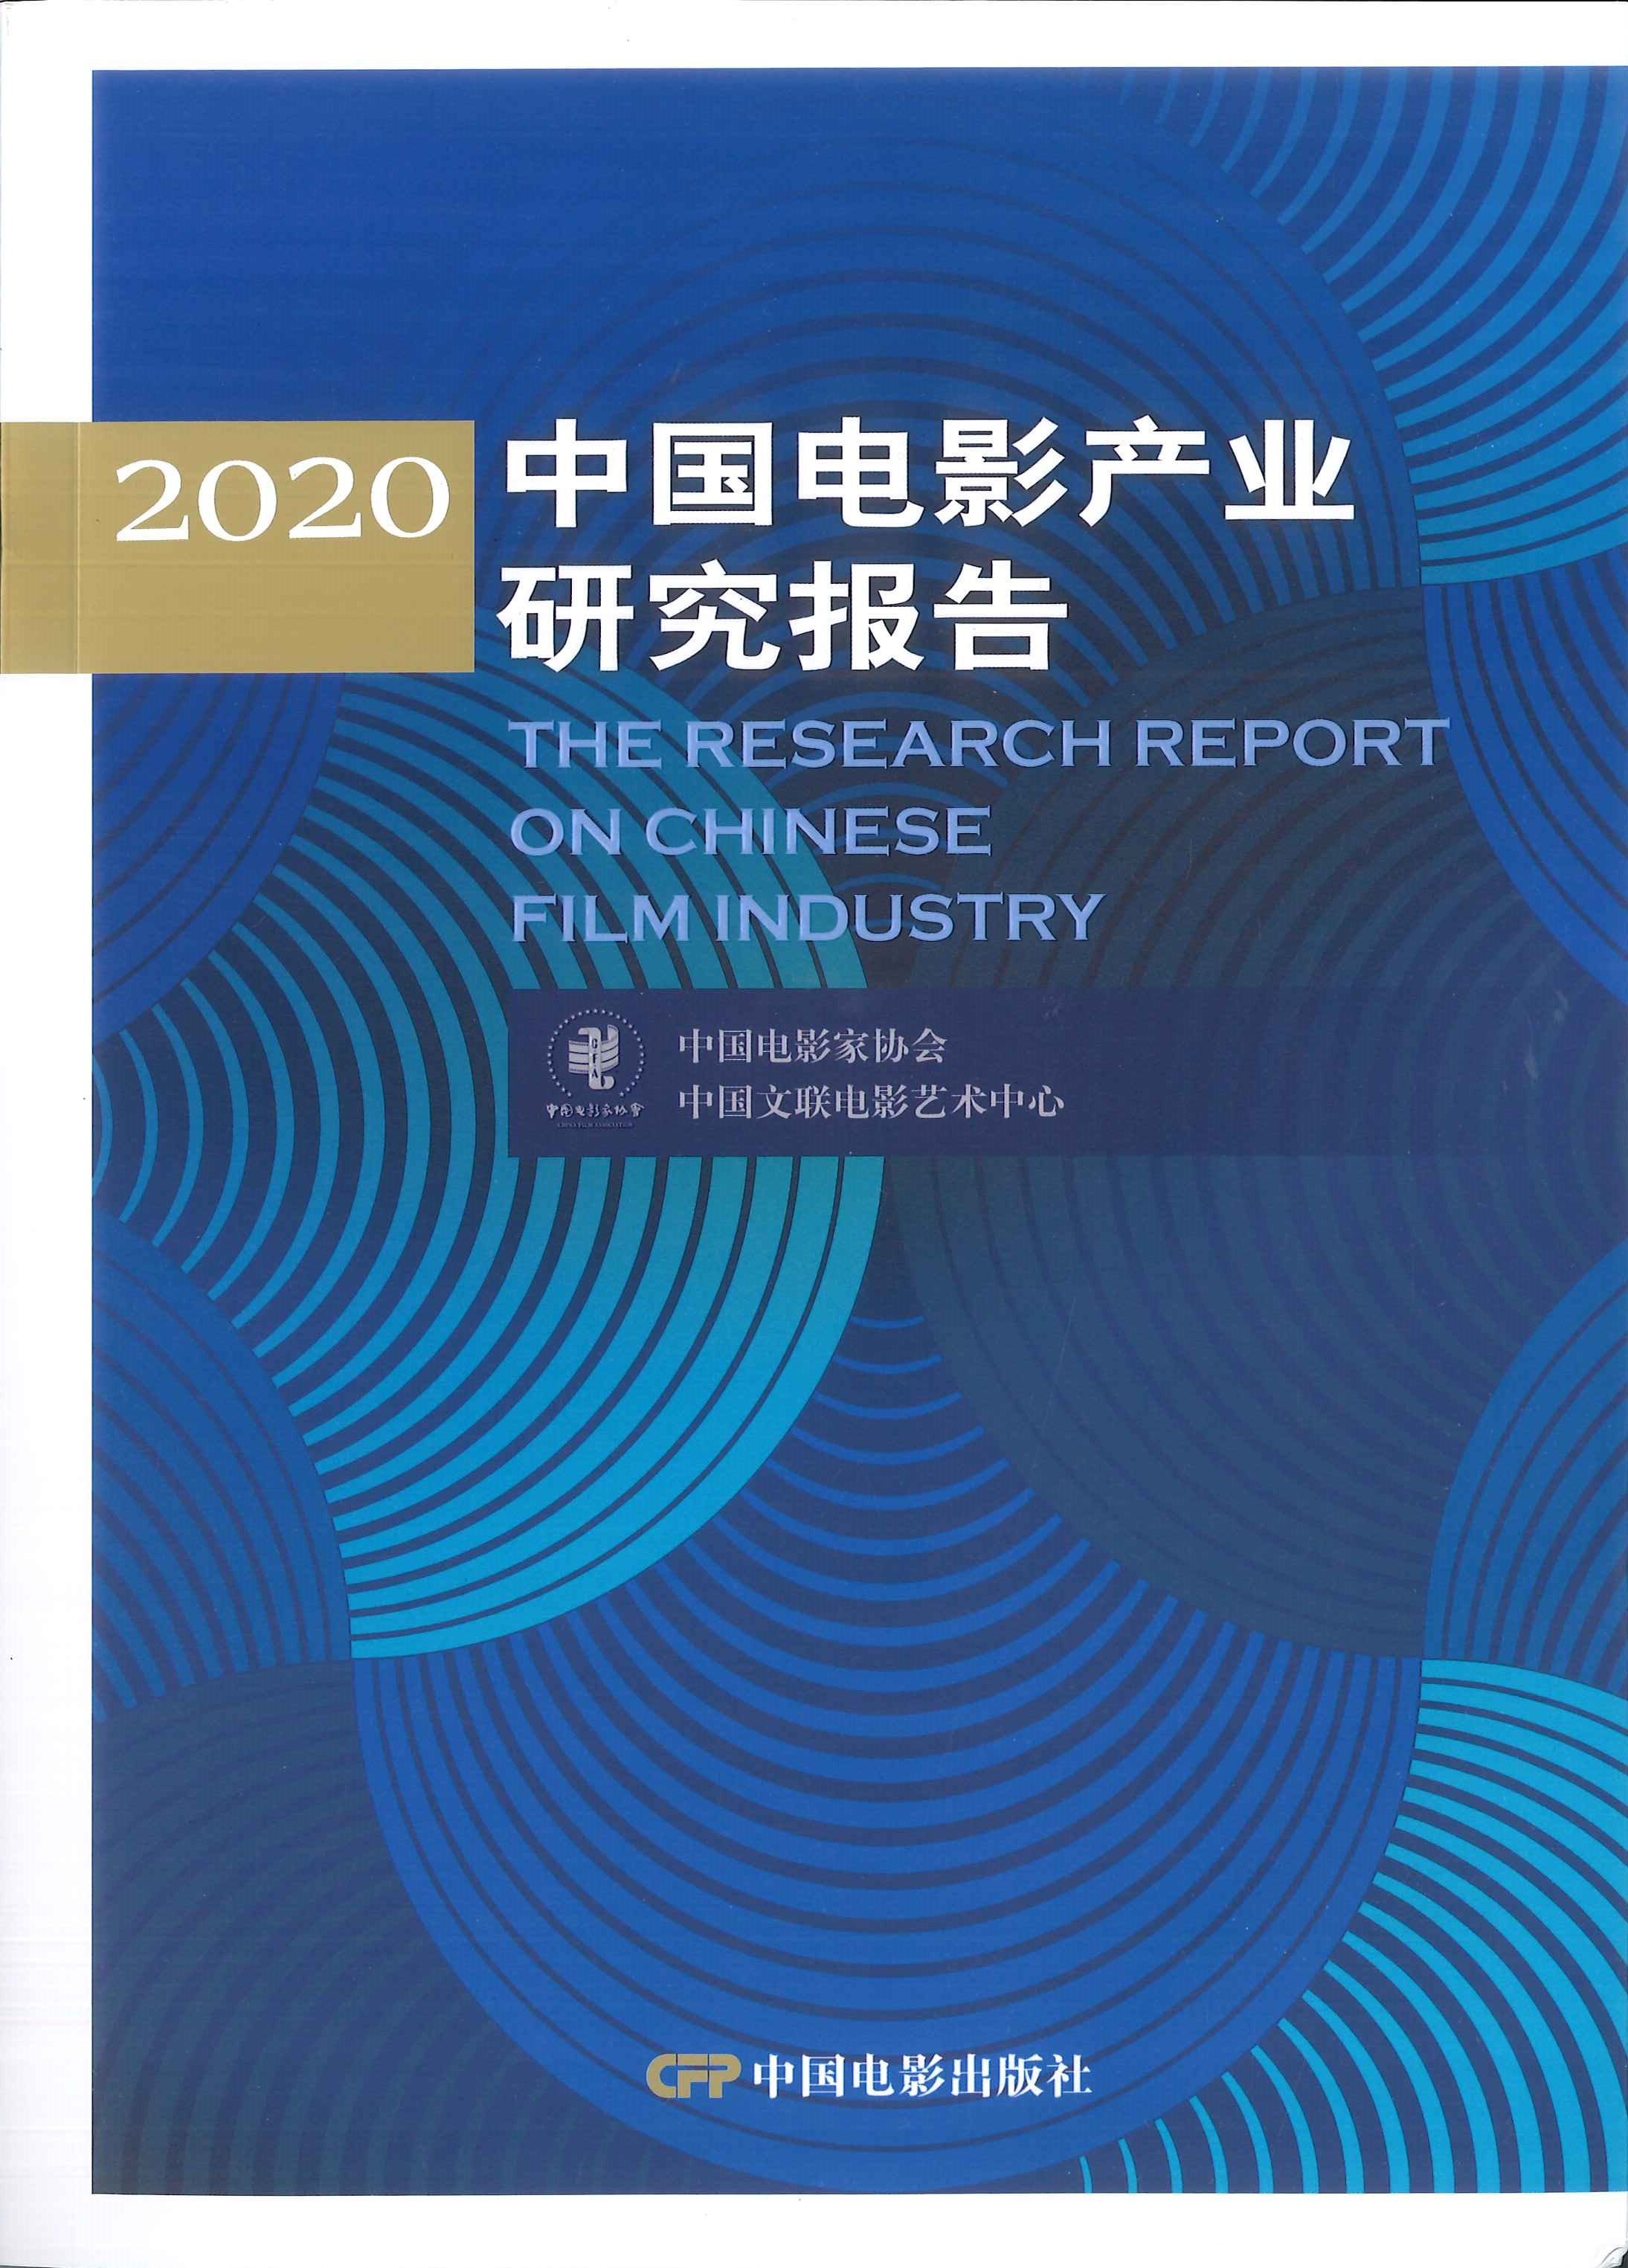 中国电影产业研究报告=The research report on Chinese film industry